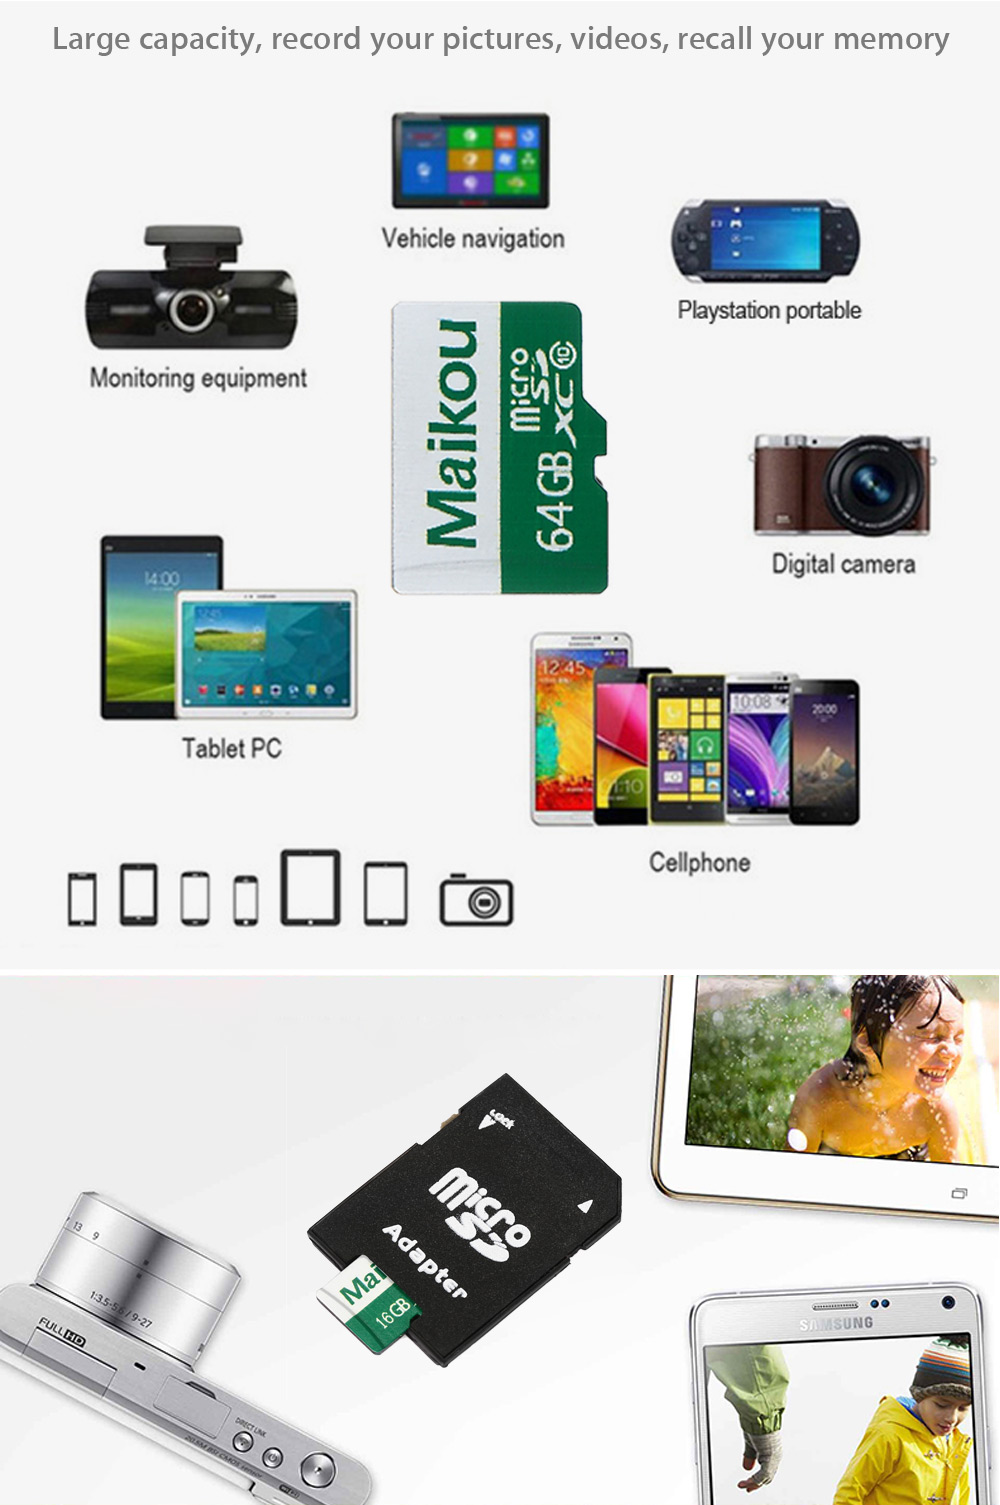 Maikou 2 in 1 32GB Micro SD Card + Adapter Data Storage Device